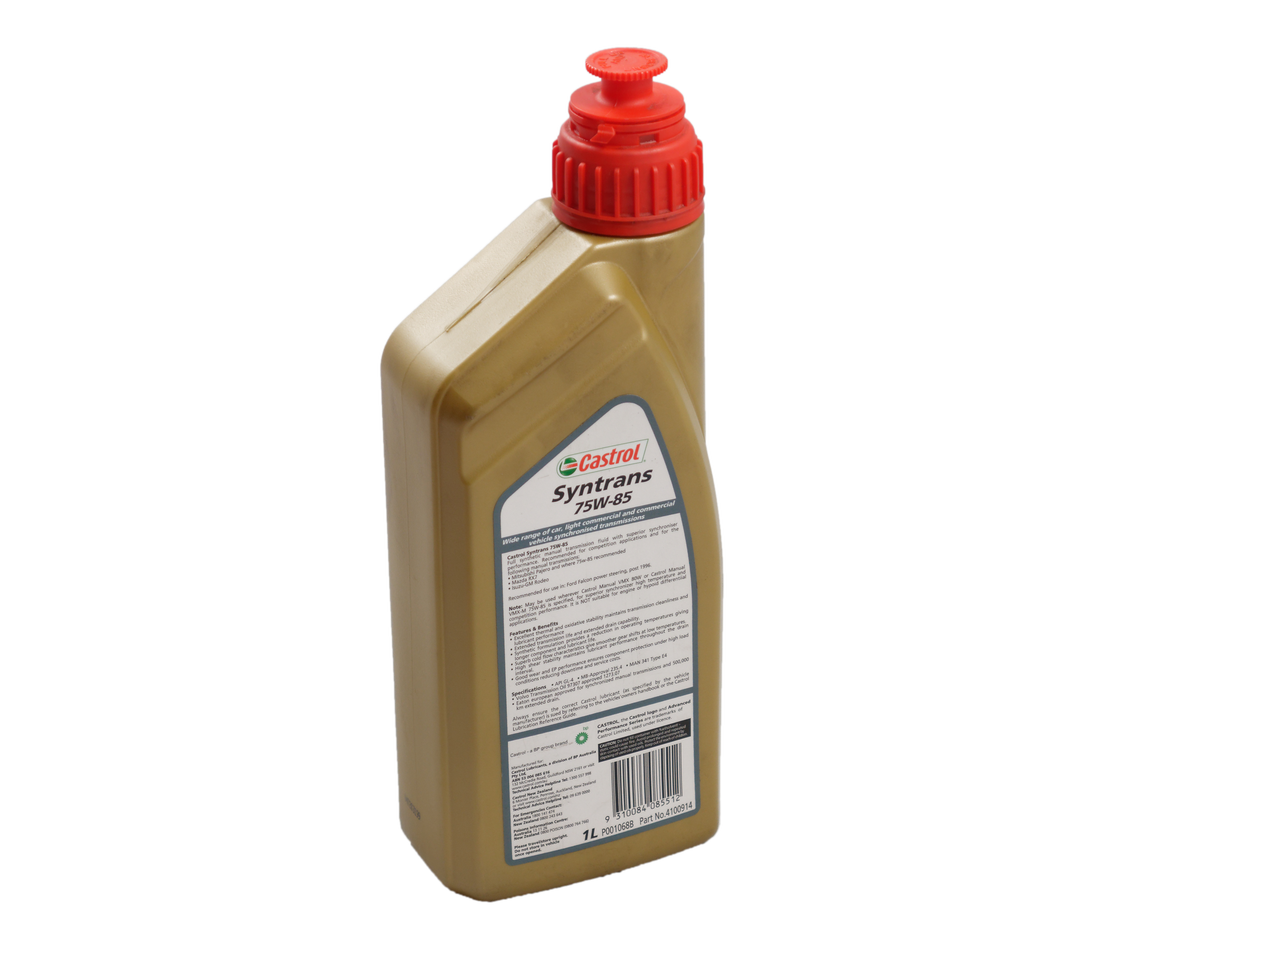 Castrol Syntrans 75W-85 Manual Transmission Fluid (1L)